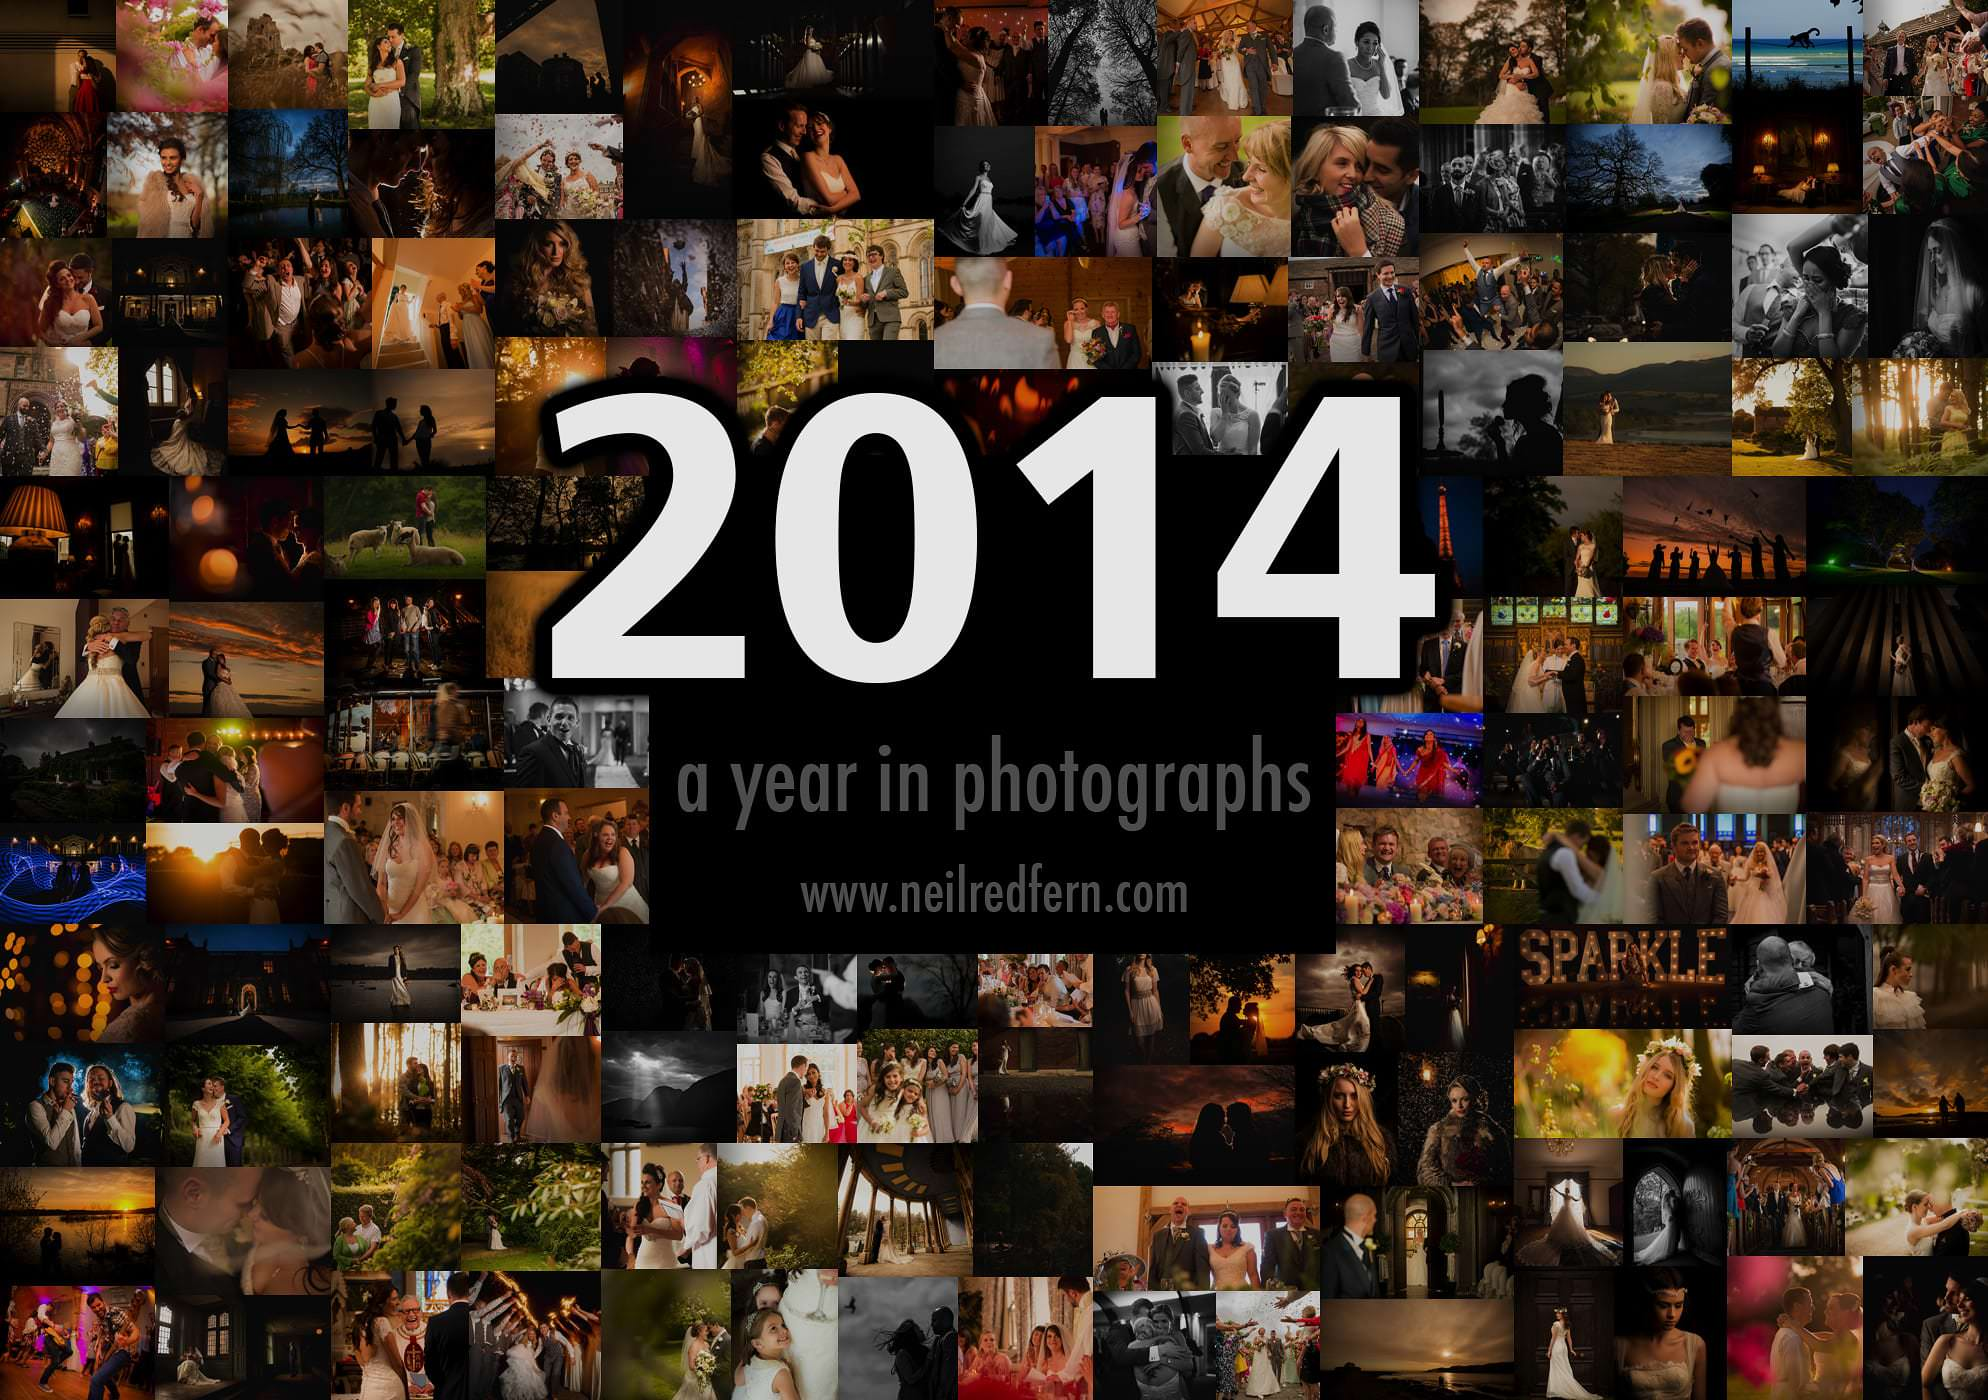 2014 - a year in photographs